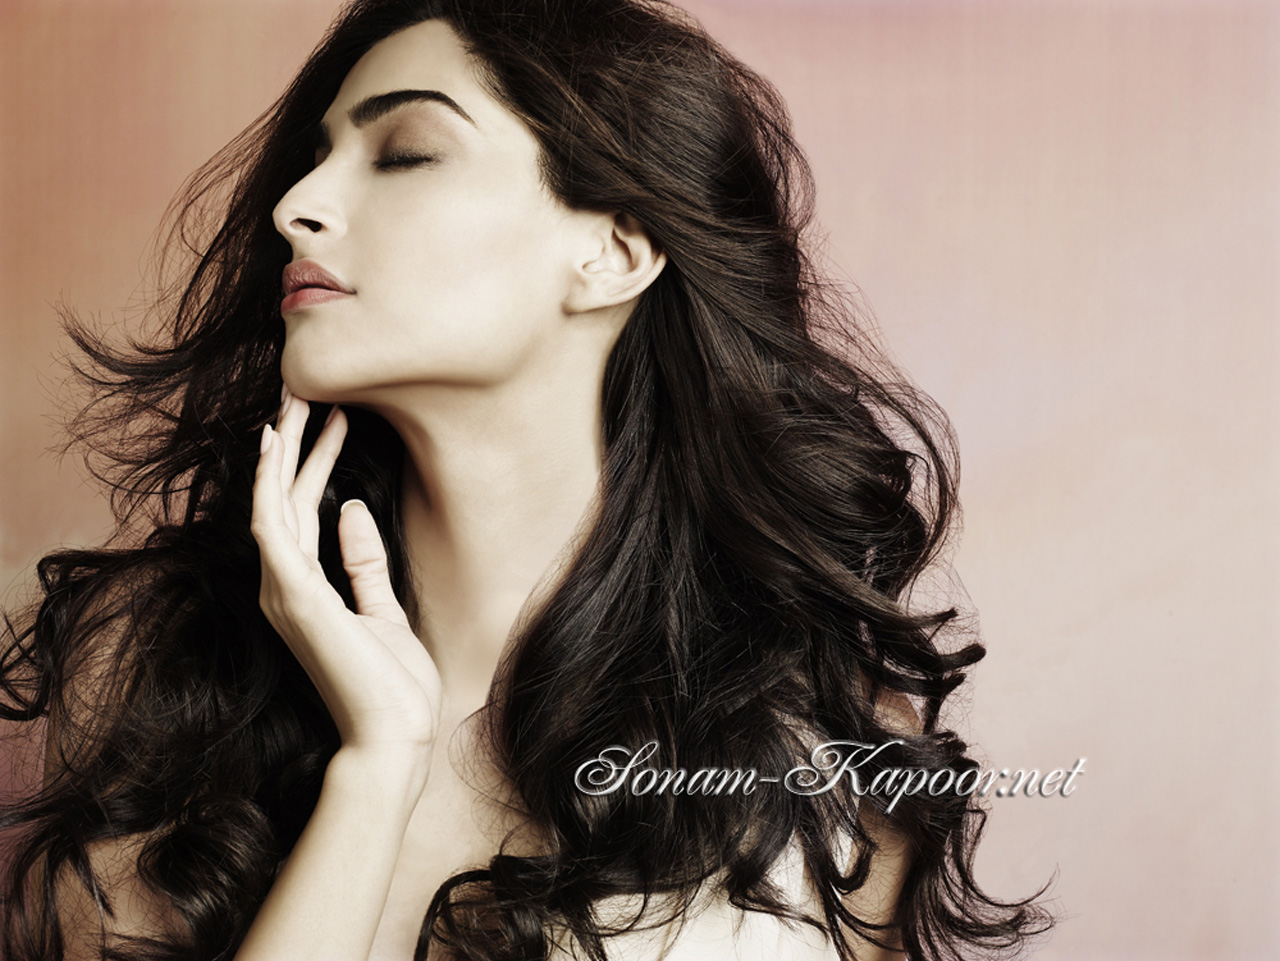 Sonam Kapoor Wallpapers: Indian Actress HD Wallpapers, Images, Pics, Gallery